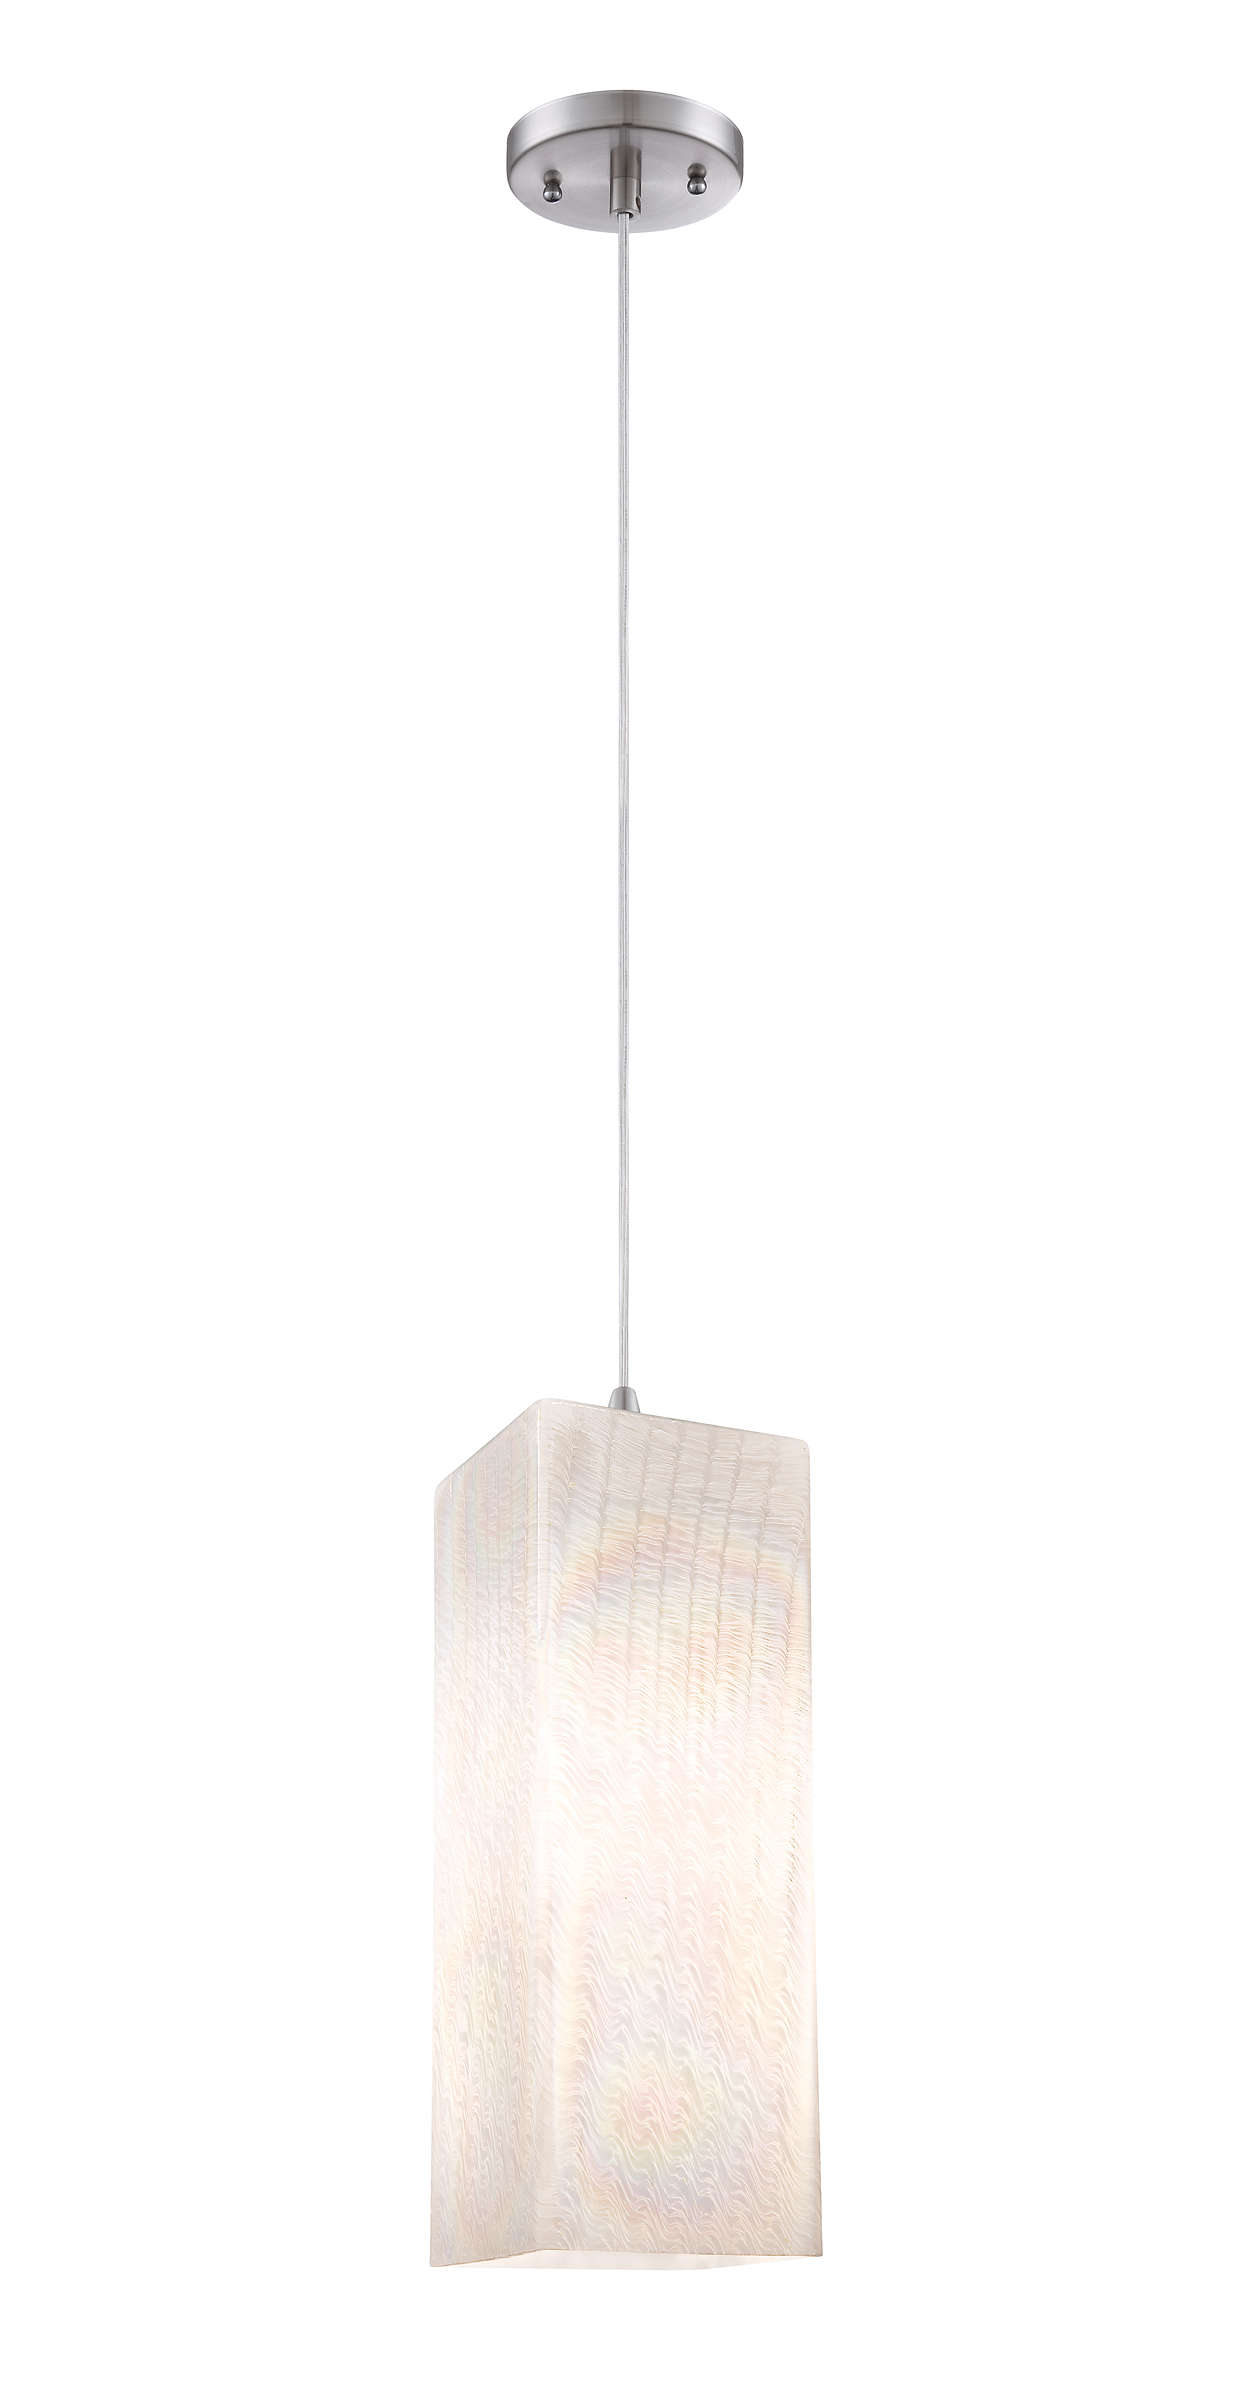 Cotton Candy 1-light pendant, Satin Nickel finish